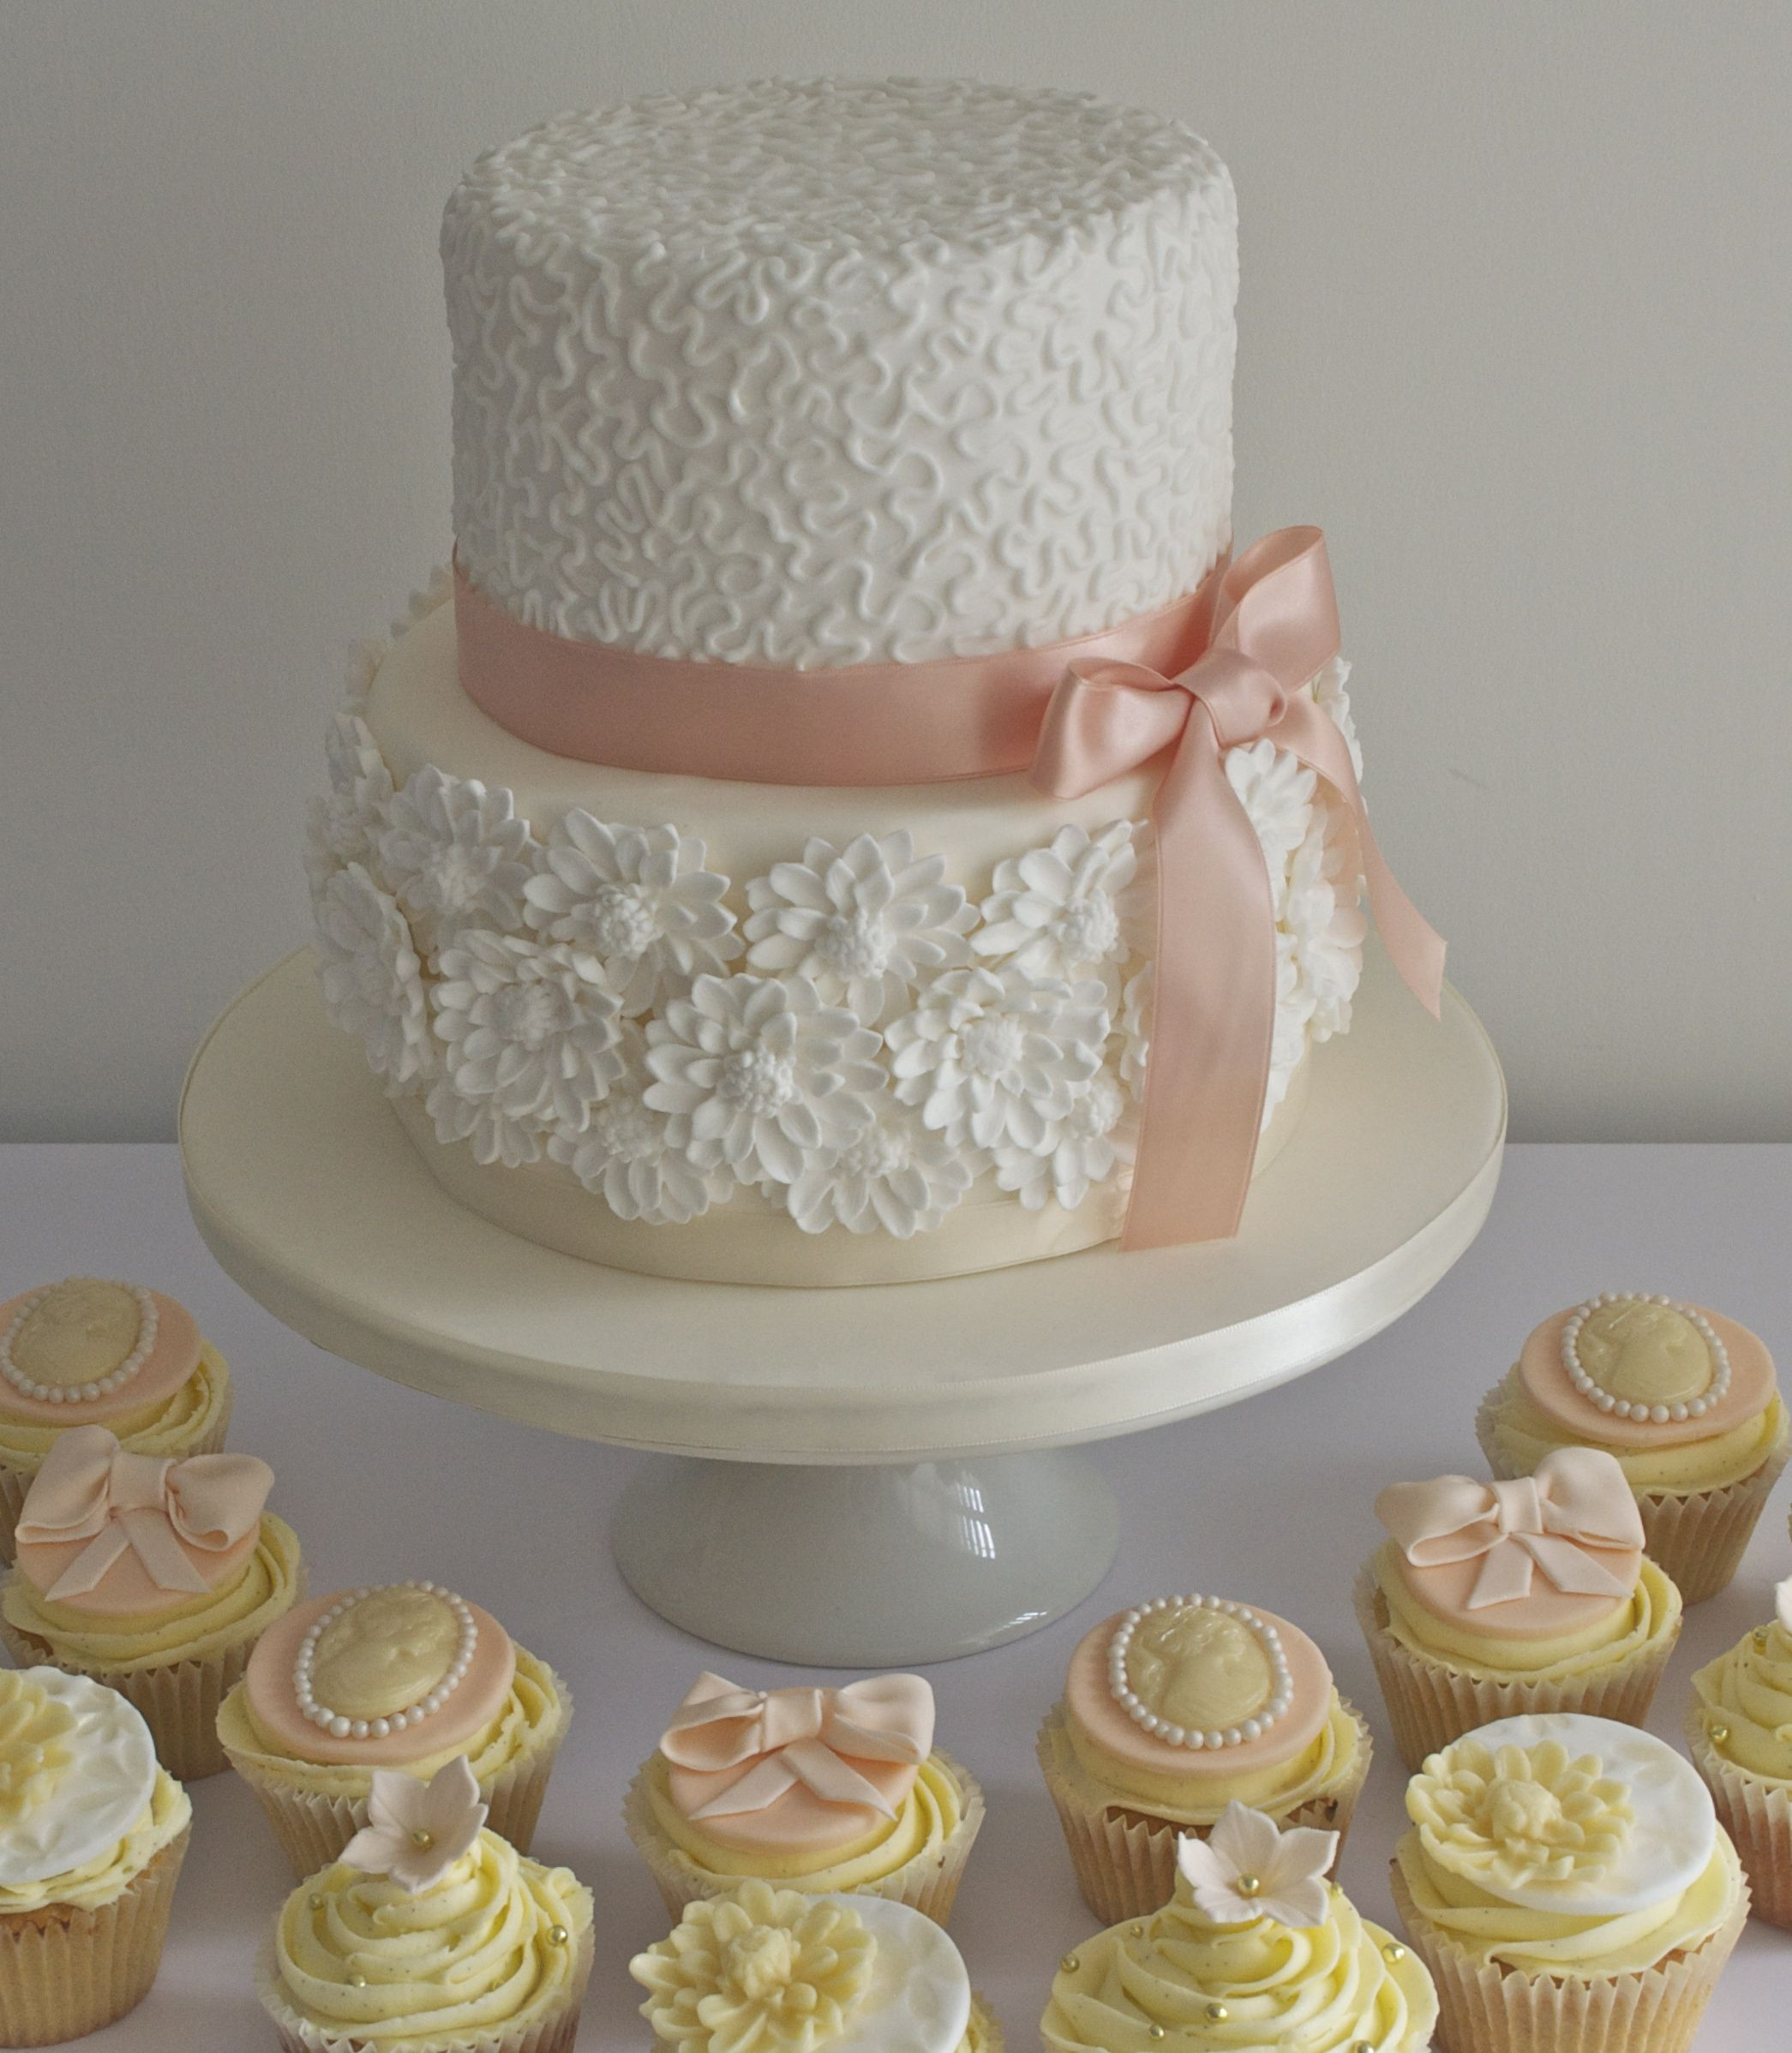 Beautiful Simple Wedding Cakes Thin Naked Wedding Cake Solid Two Tier Wedding Cake Mini Wedding Cakes Old Wedding Cake Drawing SoftHow Much Is A Wedding Cake Peach And White Chocolate Wedding Cake And Cupcakes   A 2 Tier ..